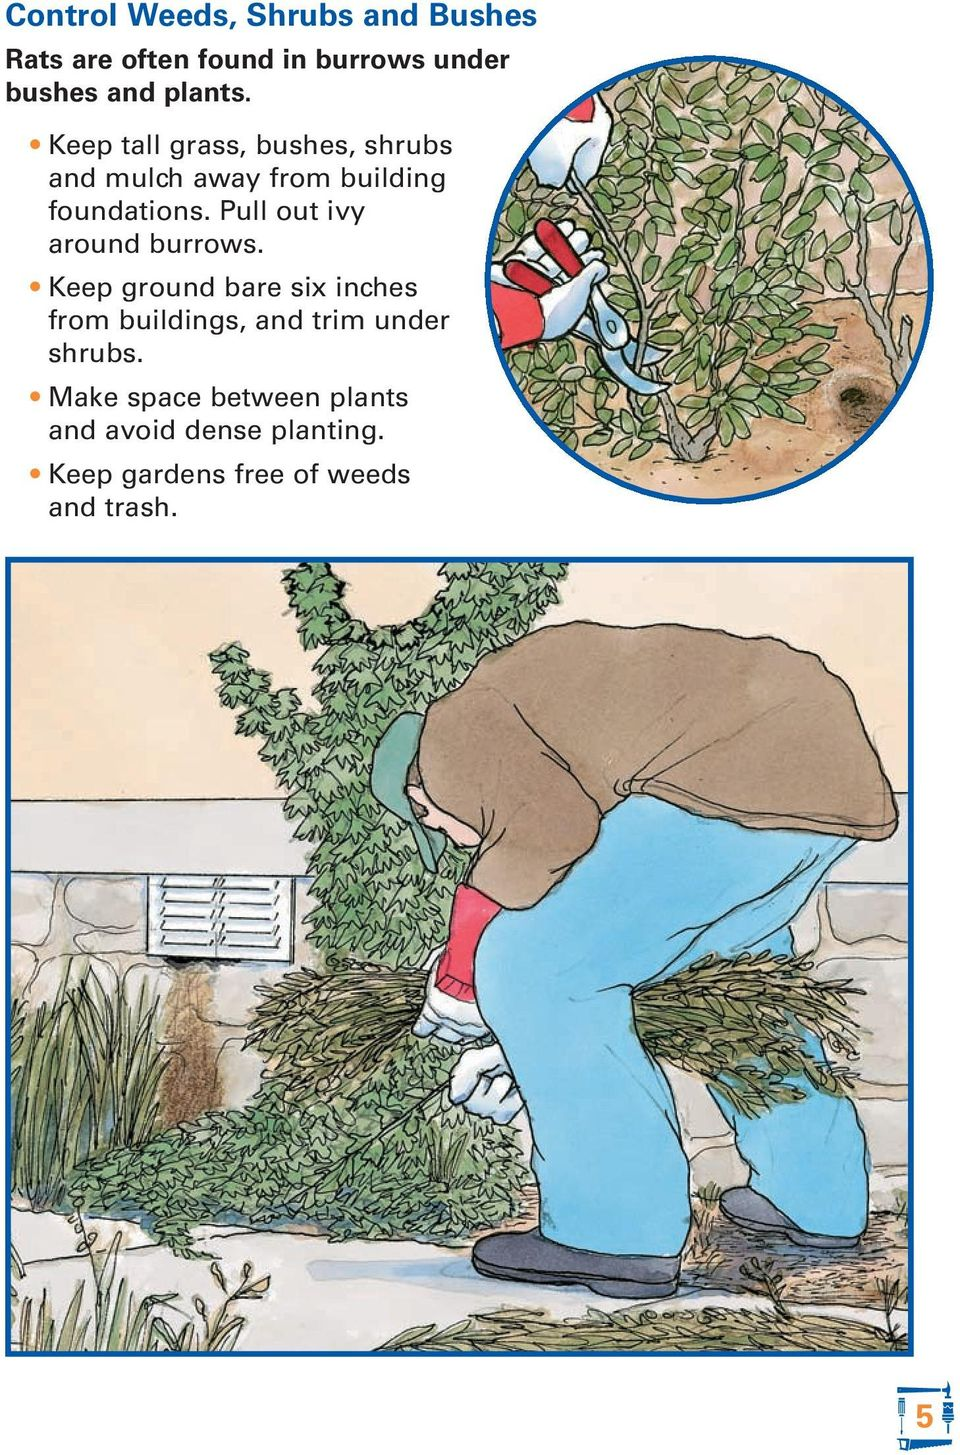 Pull out ivy around burrows.